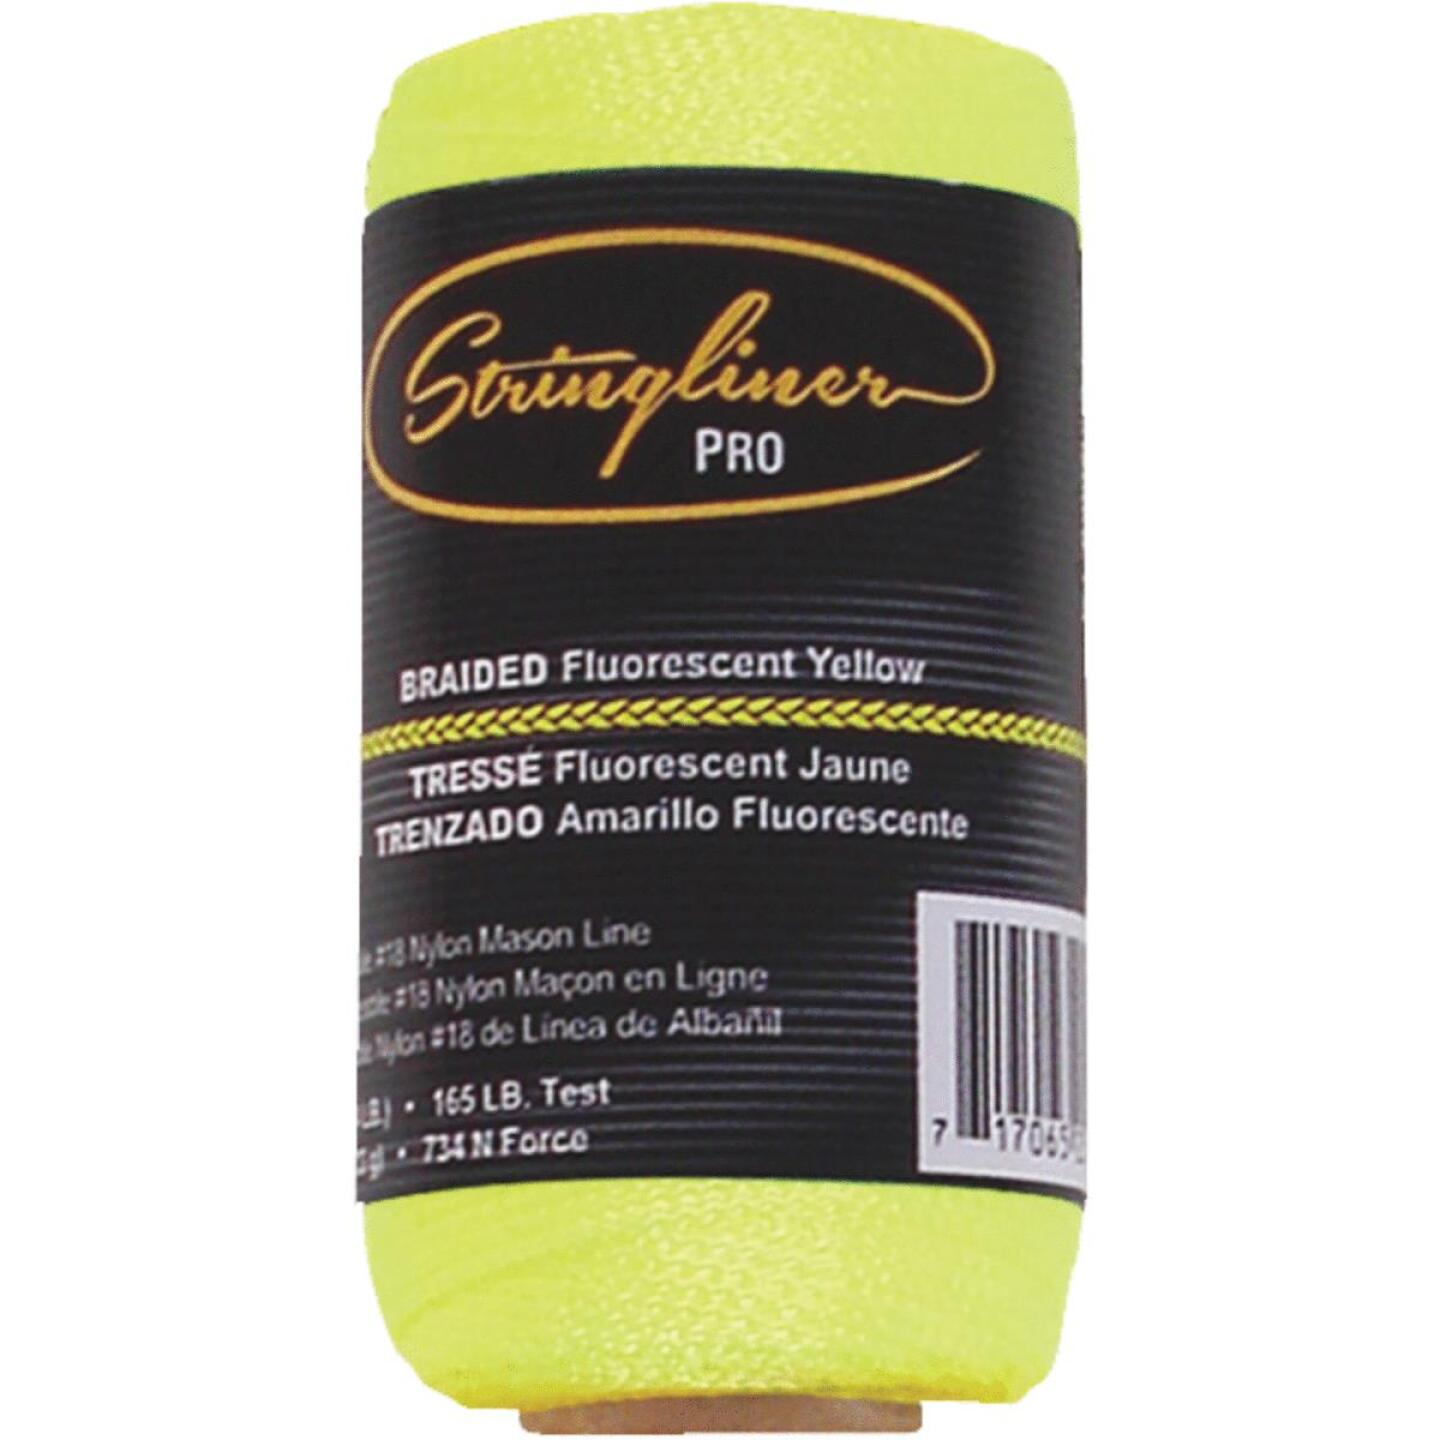 Stringliner 250 Ft. Fluorescent Yellow Braided Nylon Mason Line Image 1